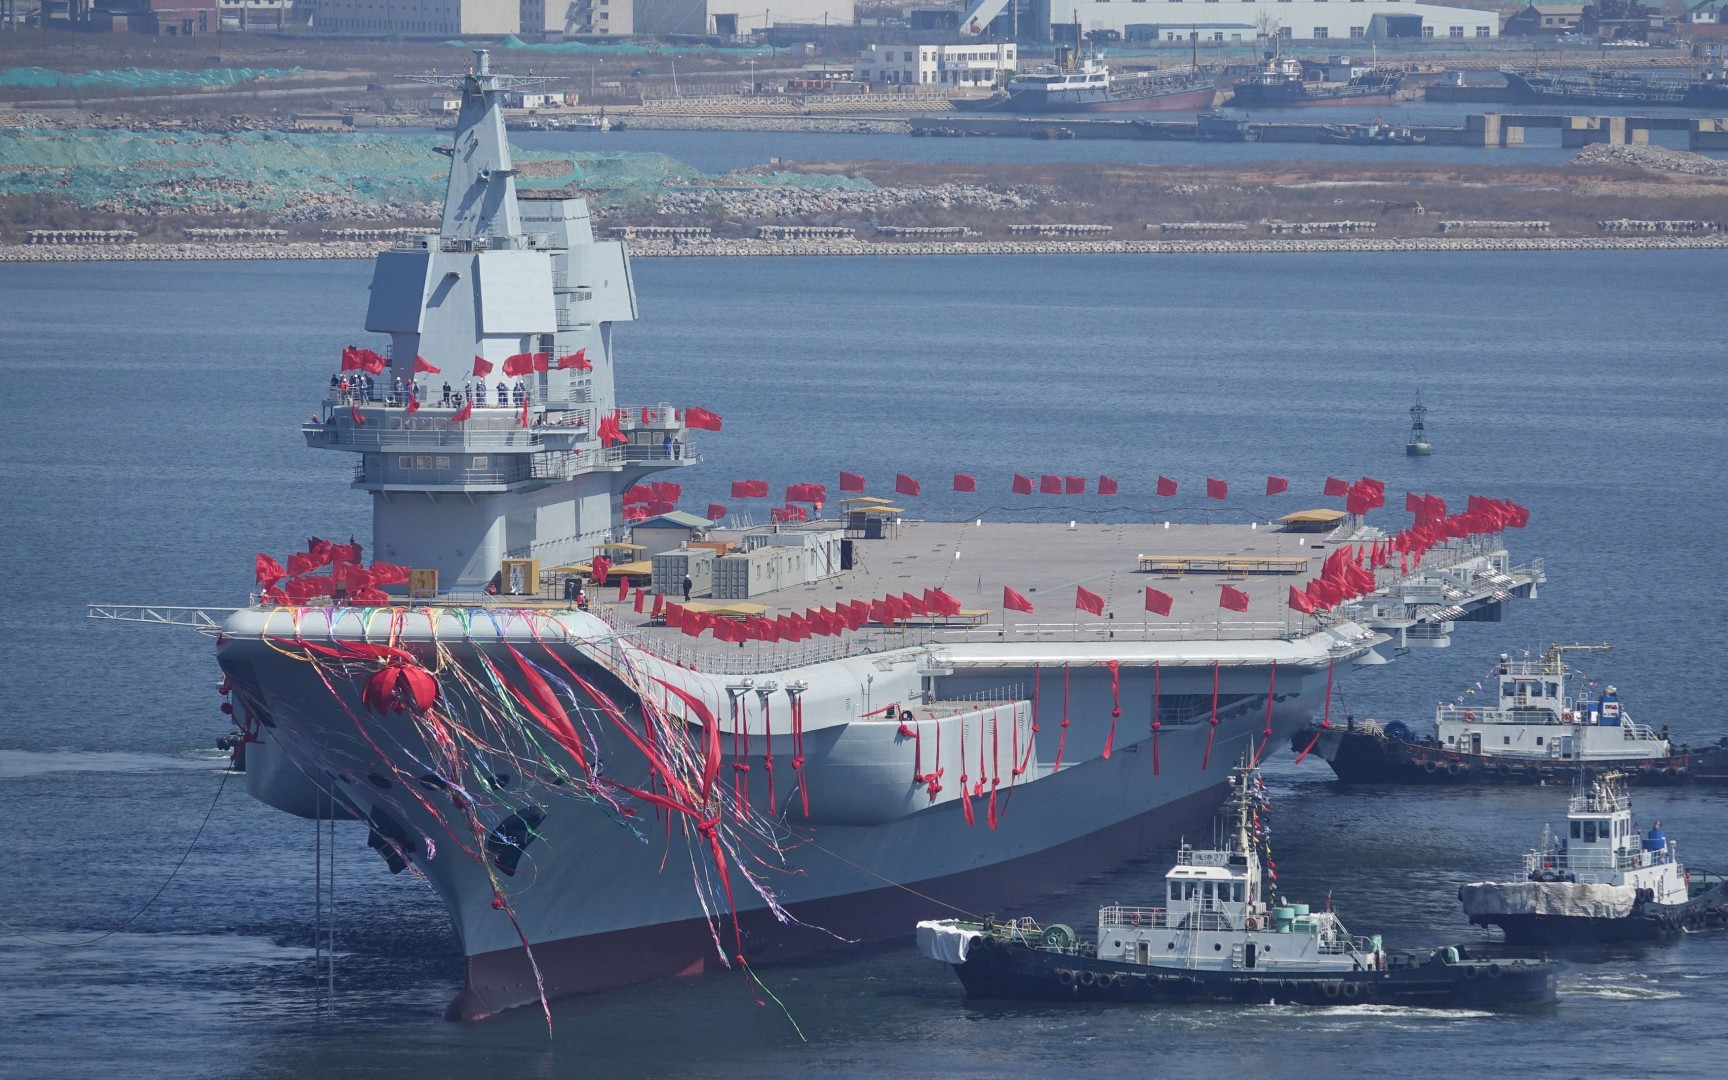 China has started building its third aircraft carrier, military